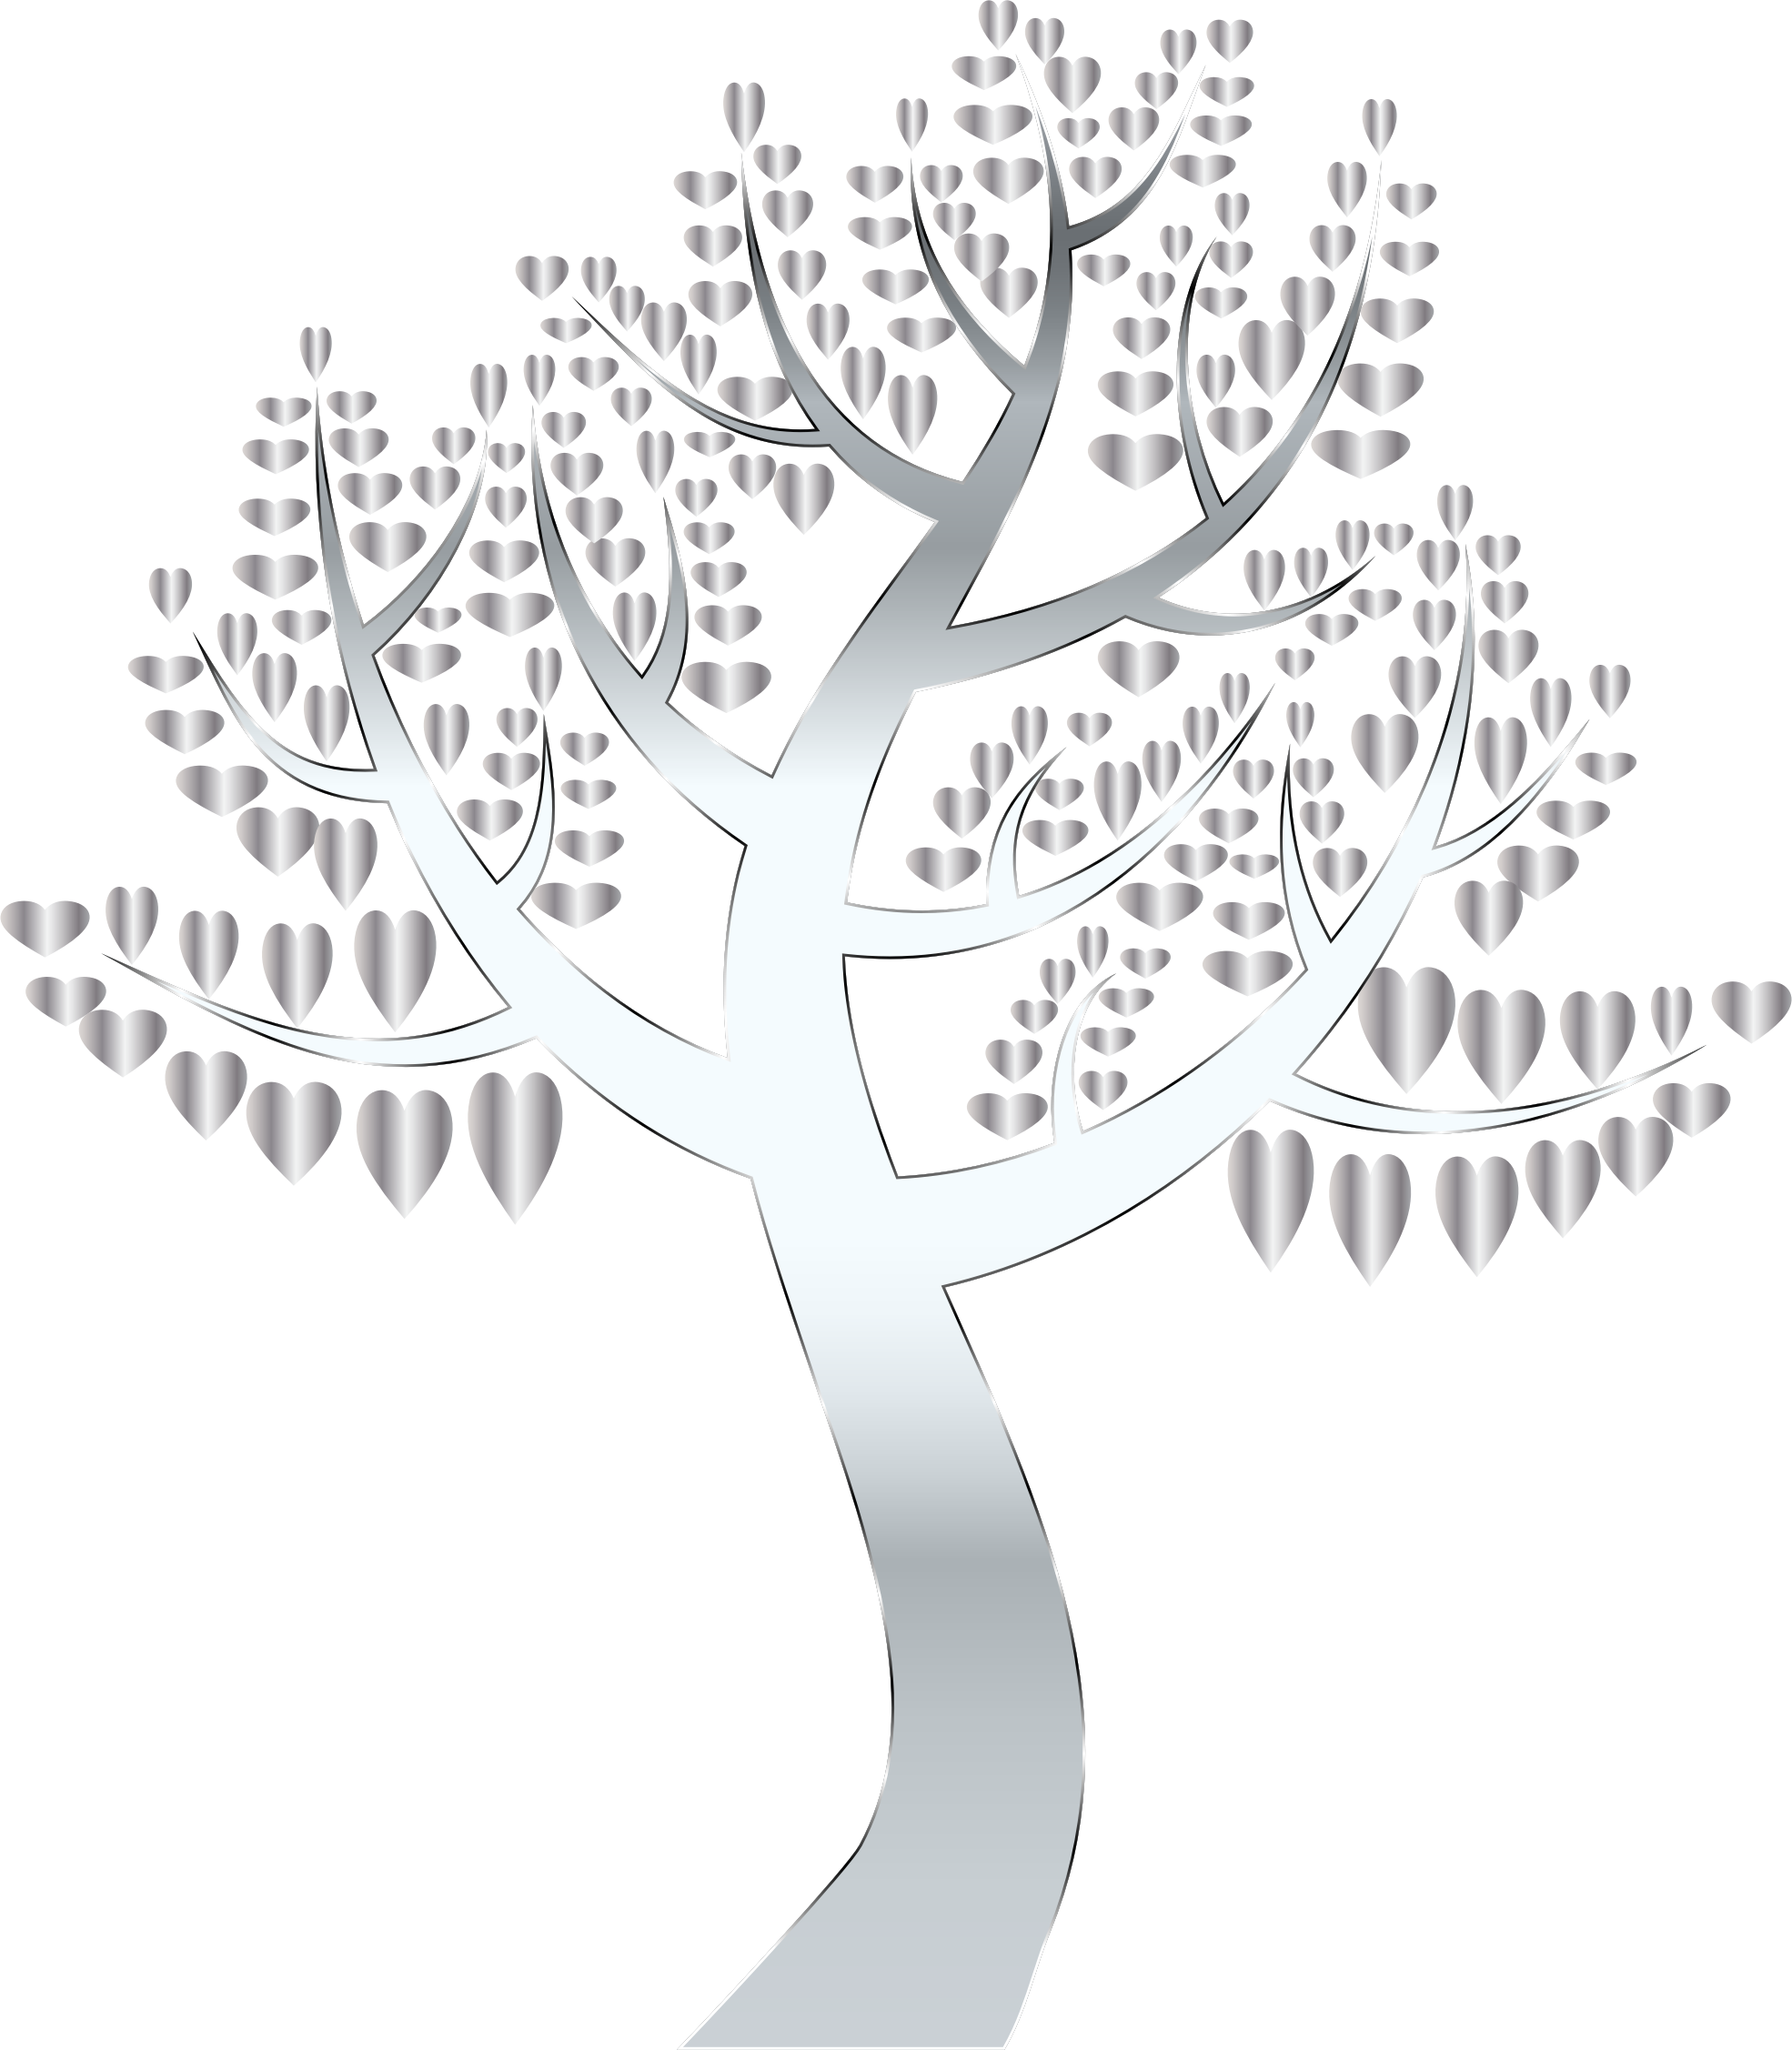 Simple Hearts Tree 13 No Background by GDJ